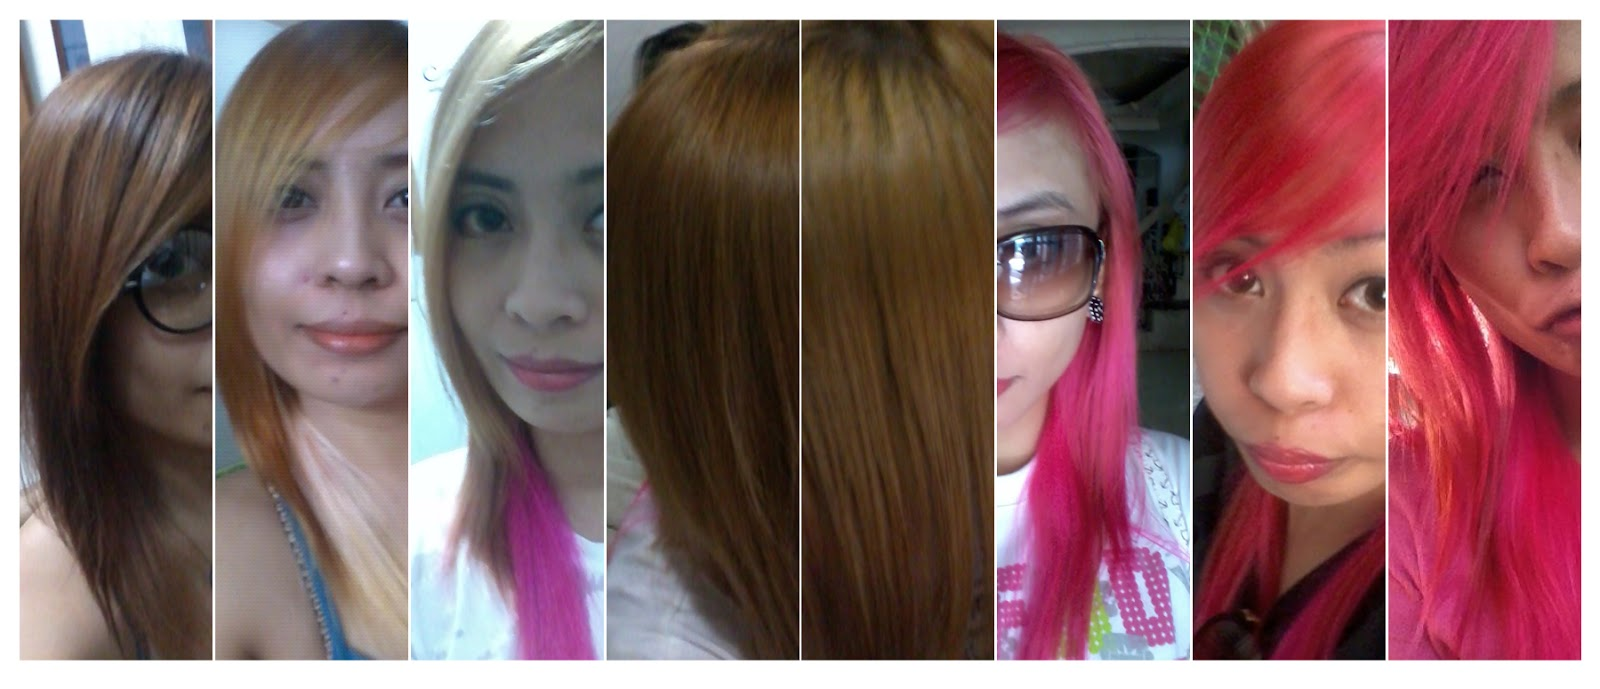 Lizcs Litter Box My Pink Hair Journey With Palty Hair Dyes Hard